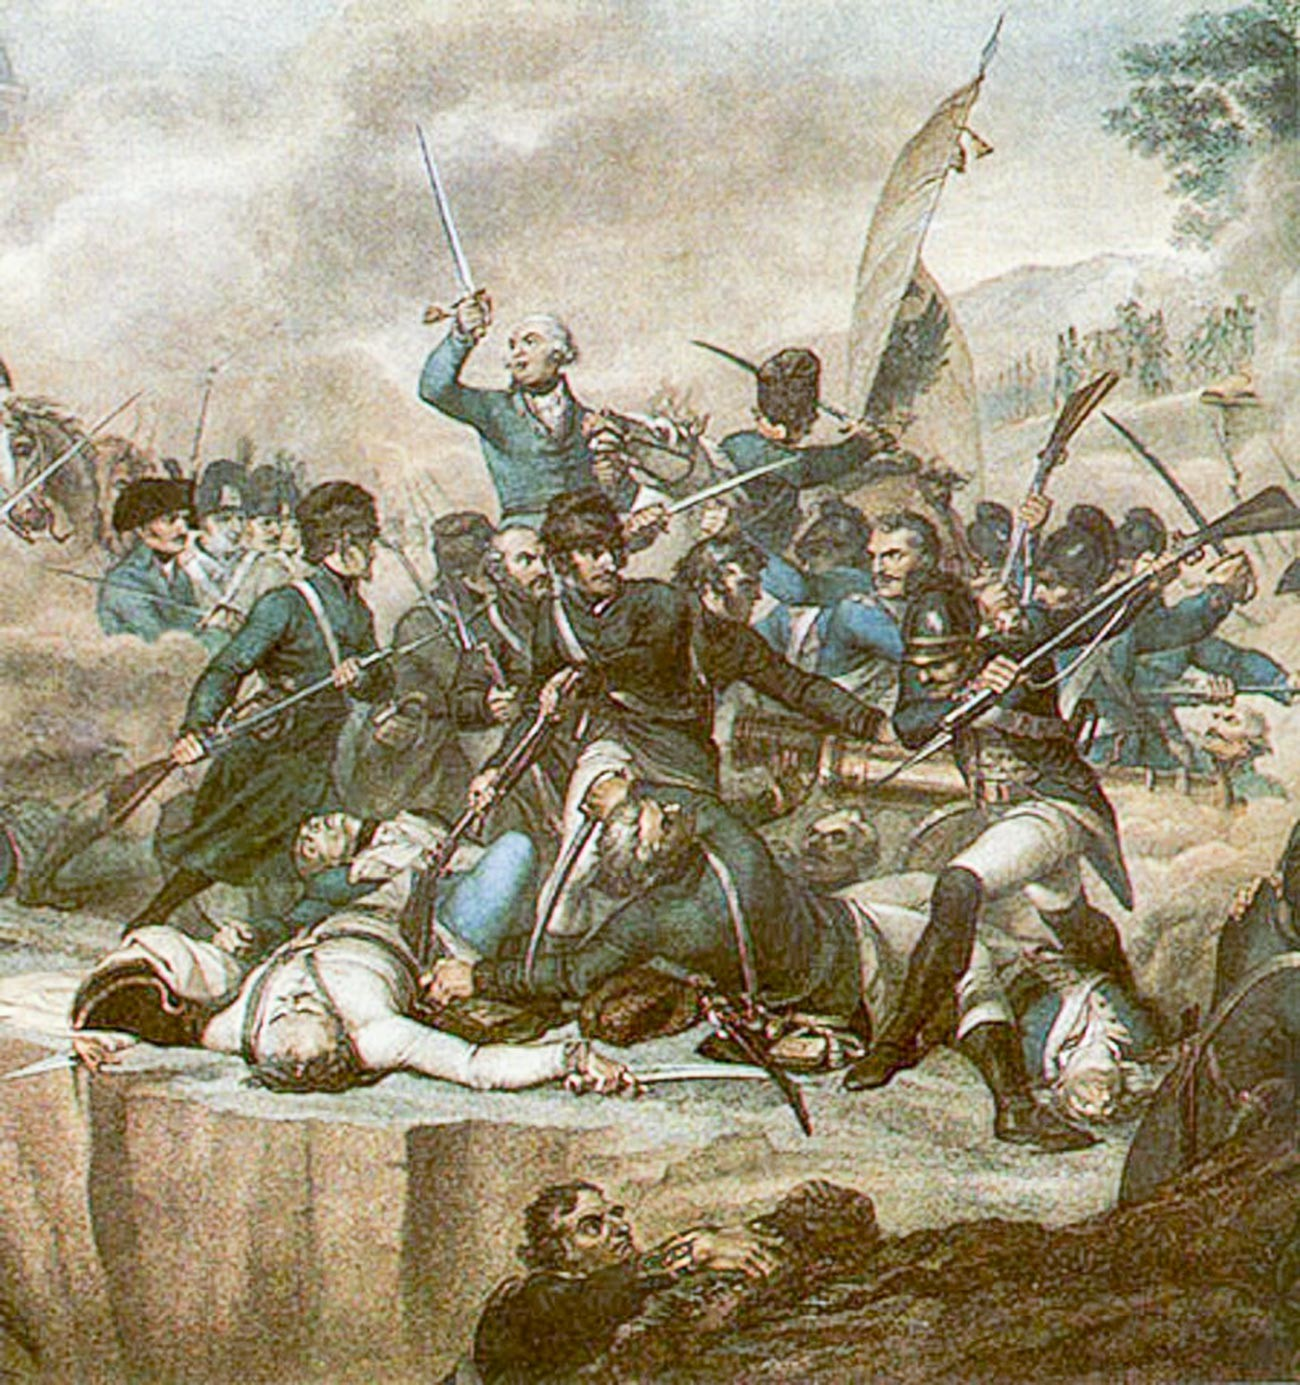 General Suvorov at the battle by river Adda on April 27, 1799.